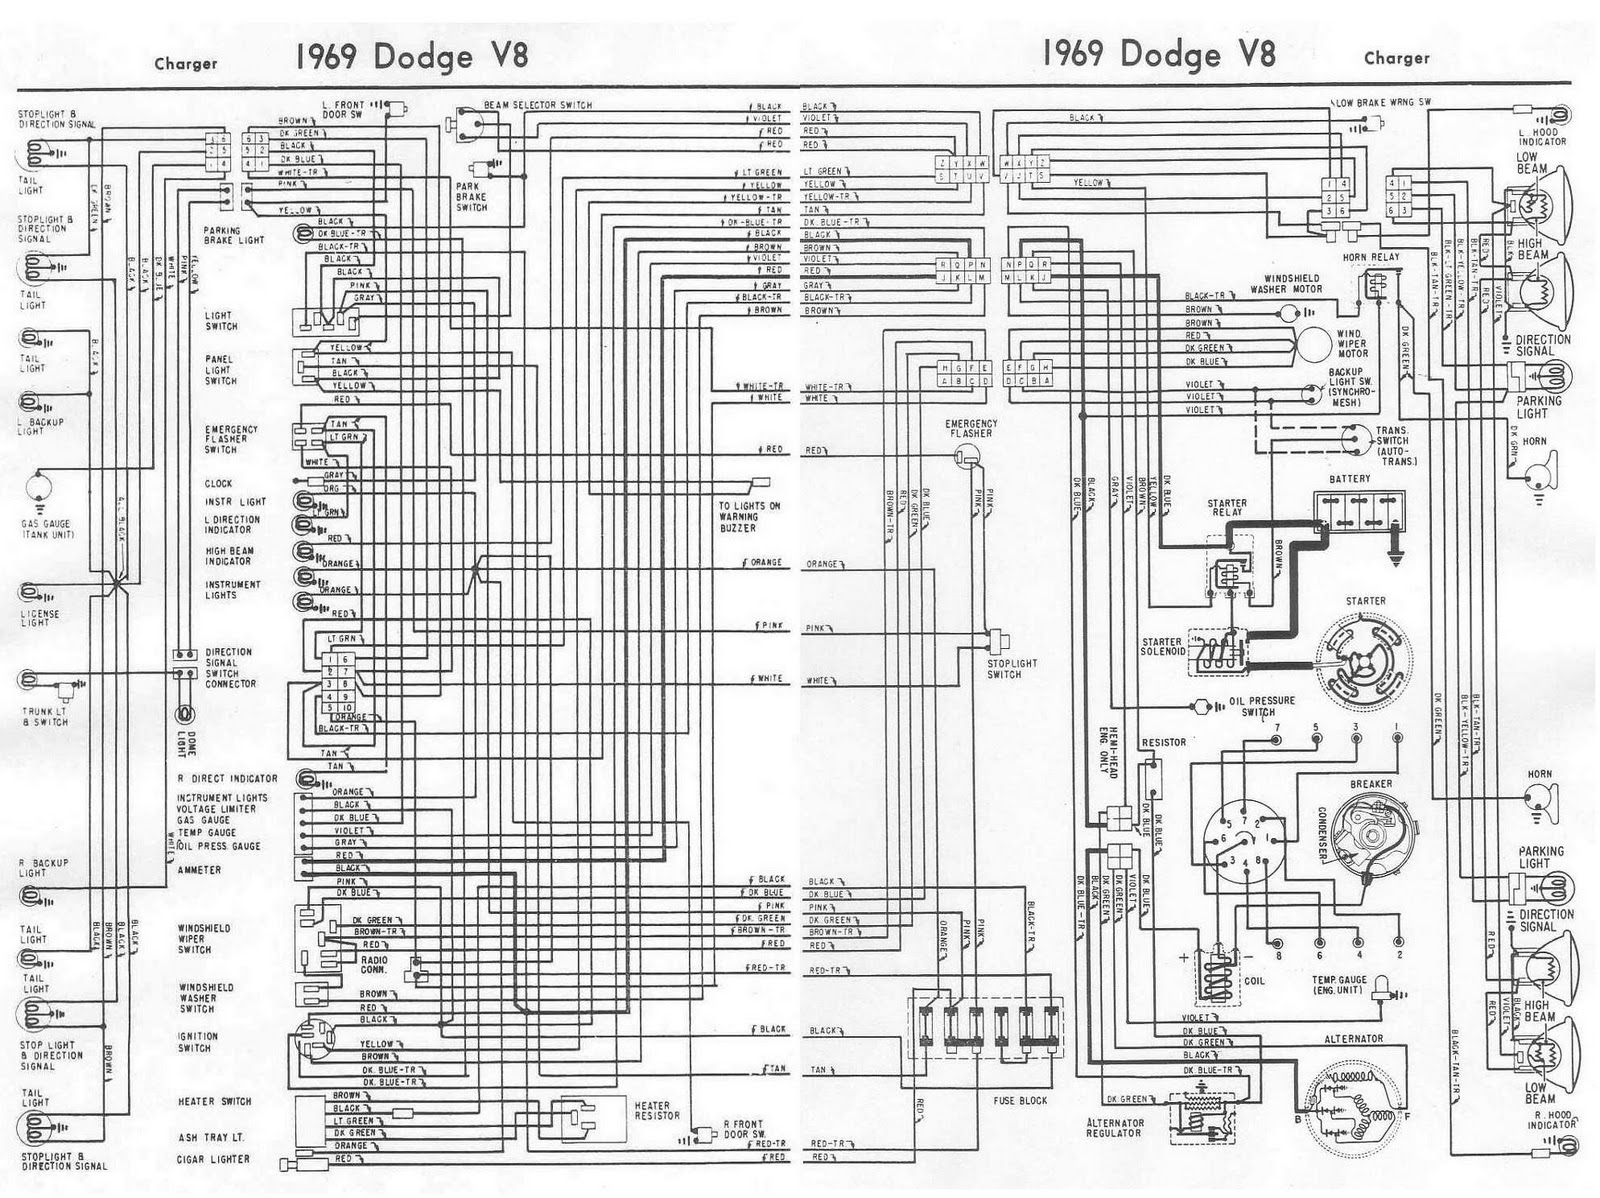 1970 dodge challenger rallye dash color wiring diagram